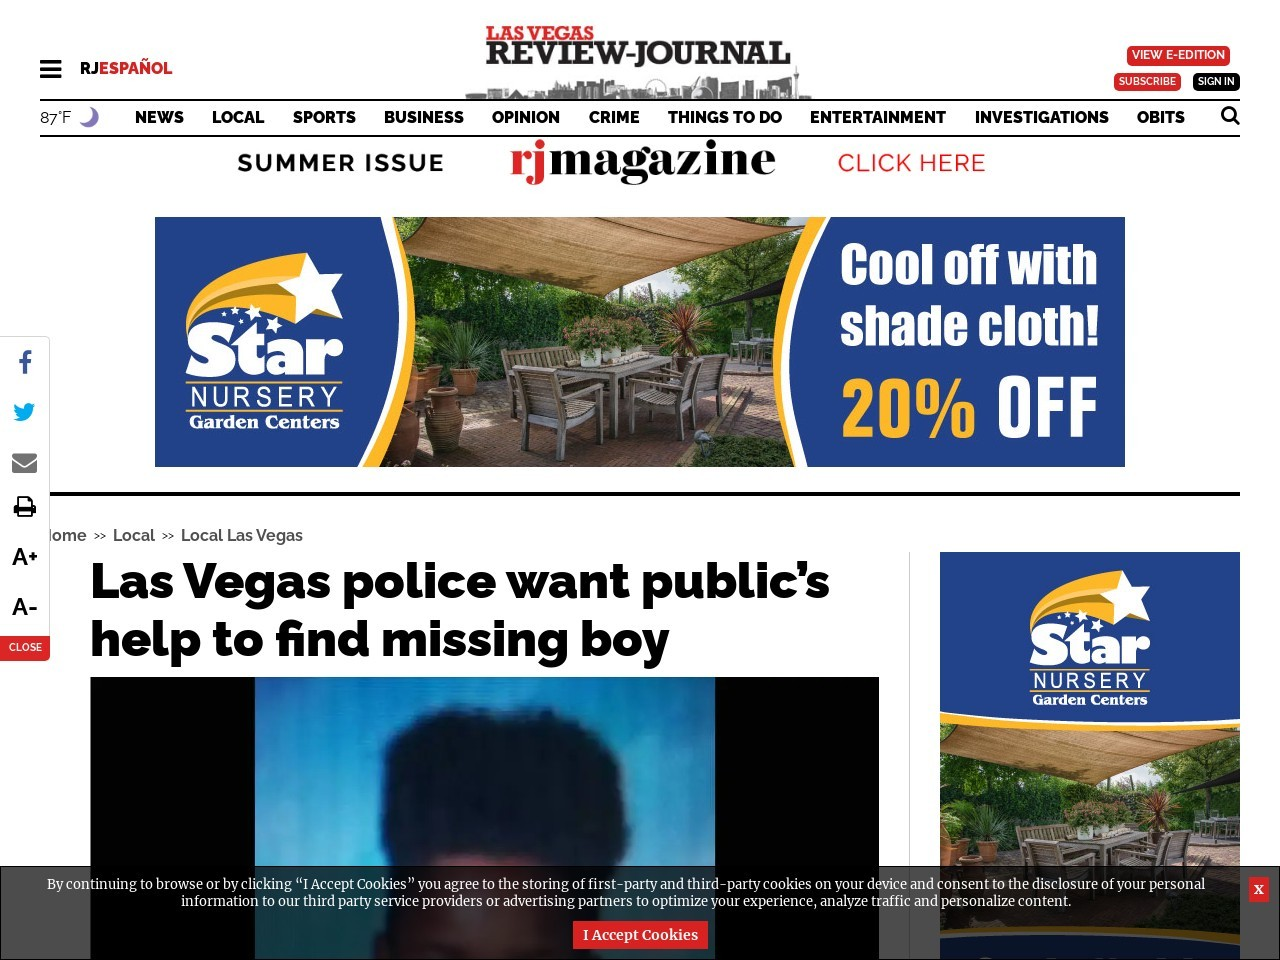 Las Vegas police want public's help to find missing boy